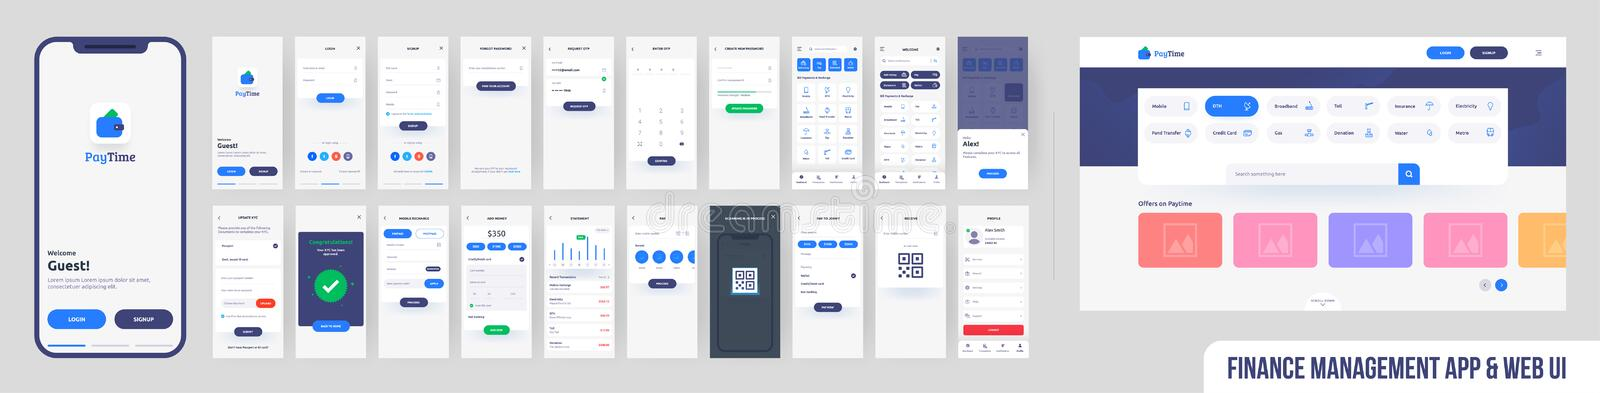 Financial management services onboarding mobile website UI or UX. royalty free illustration